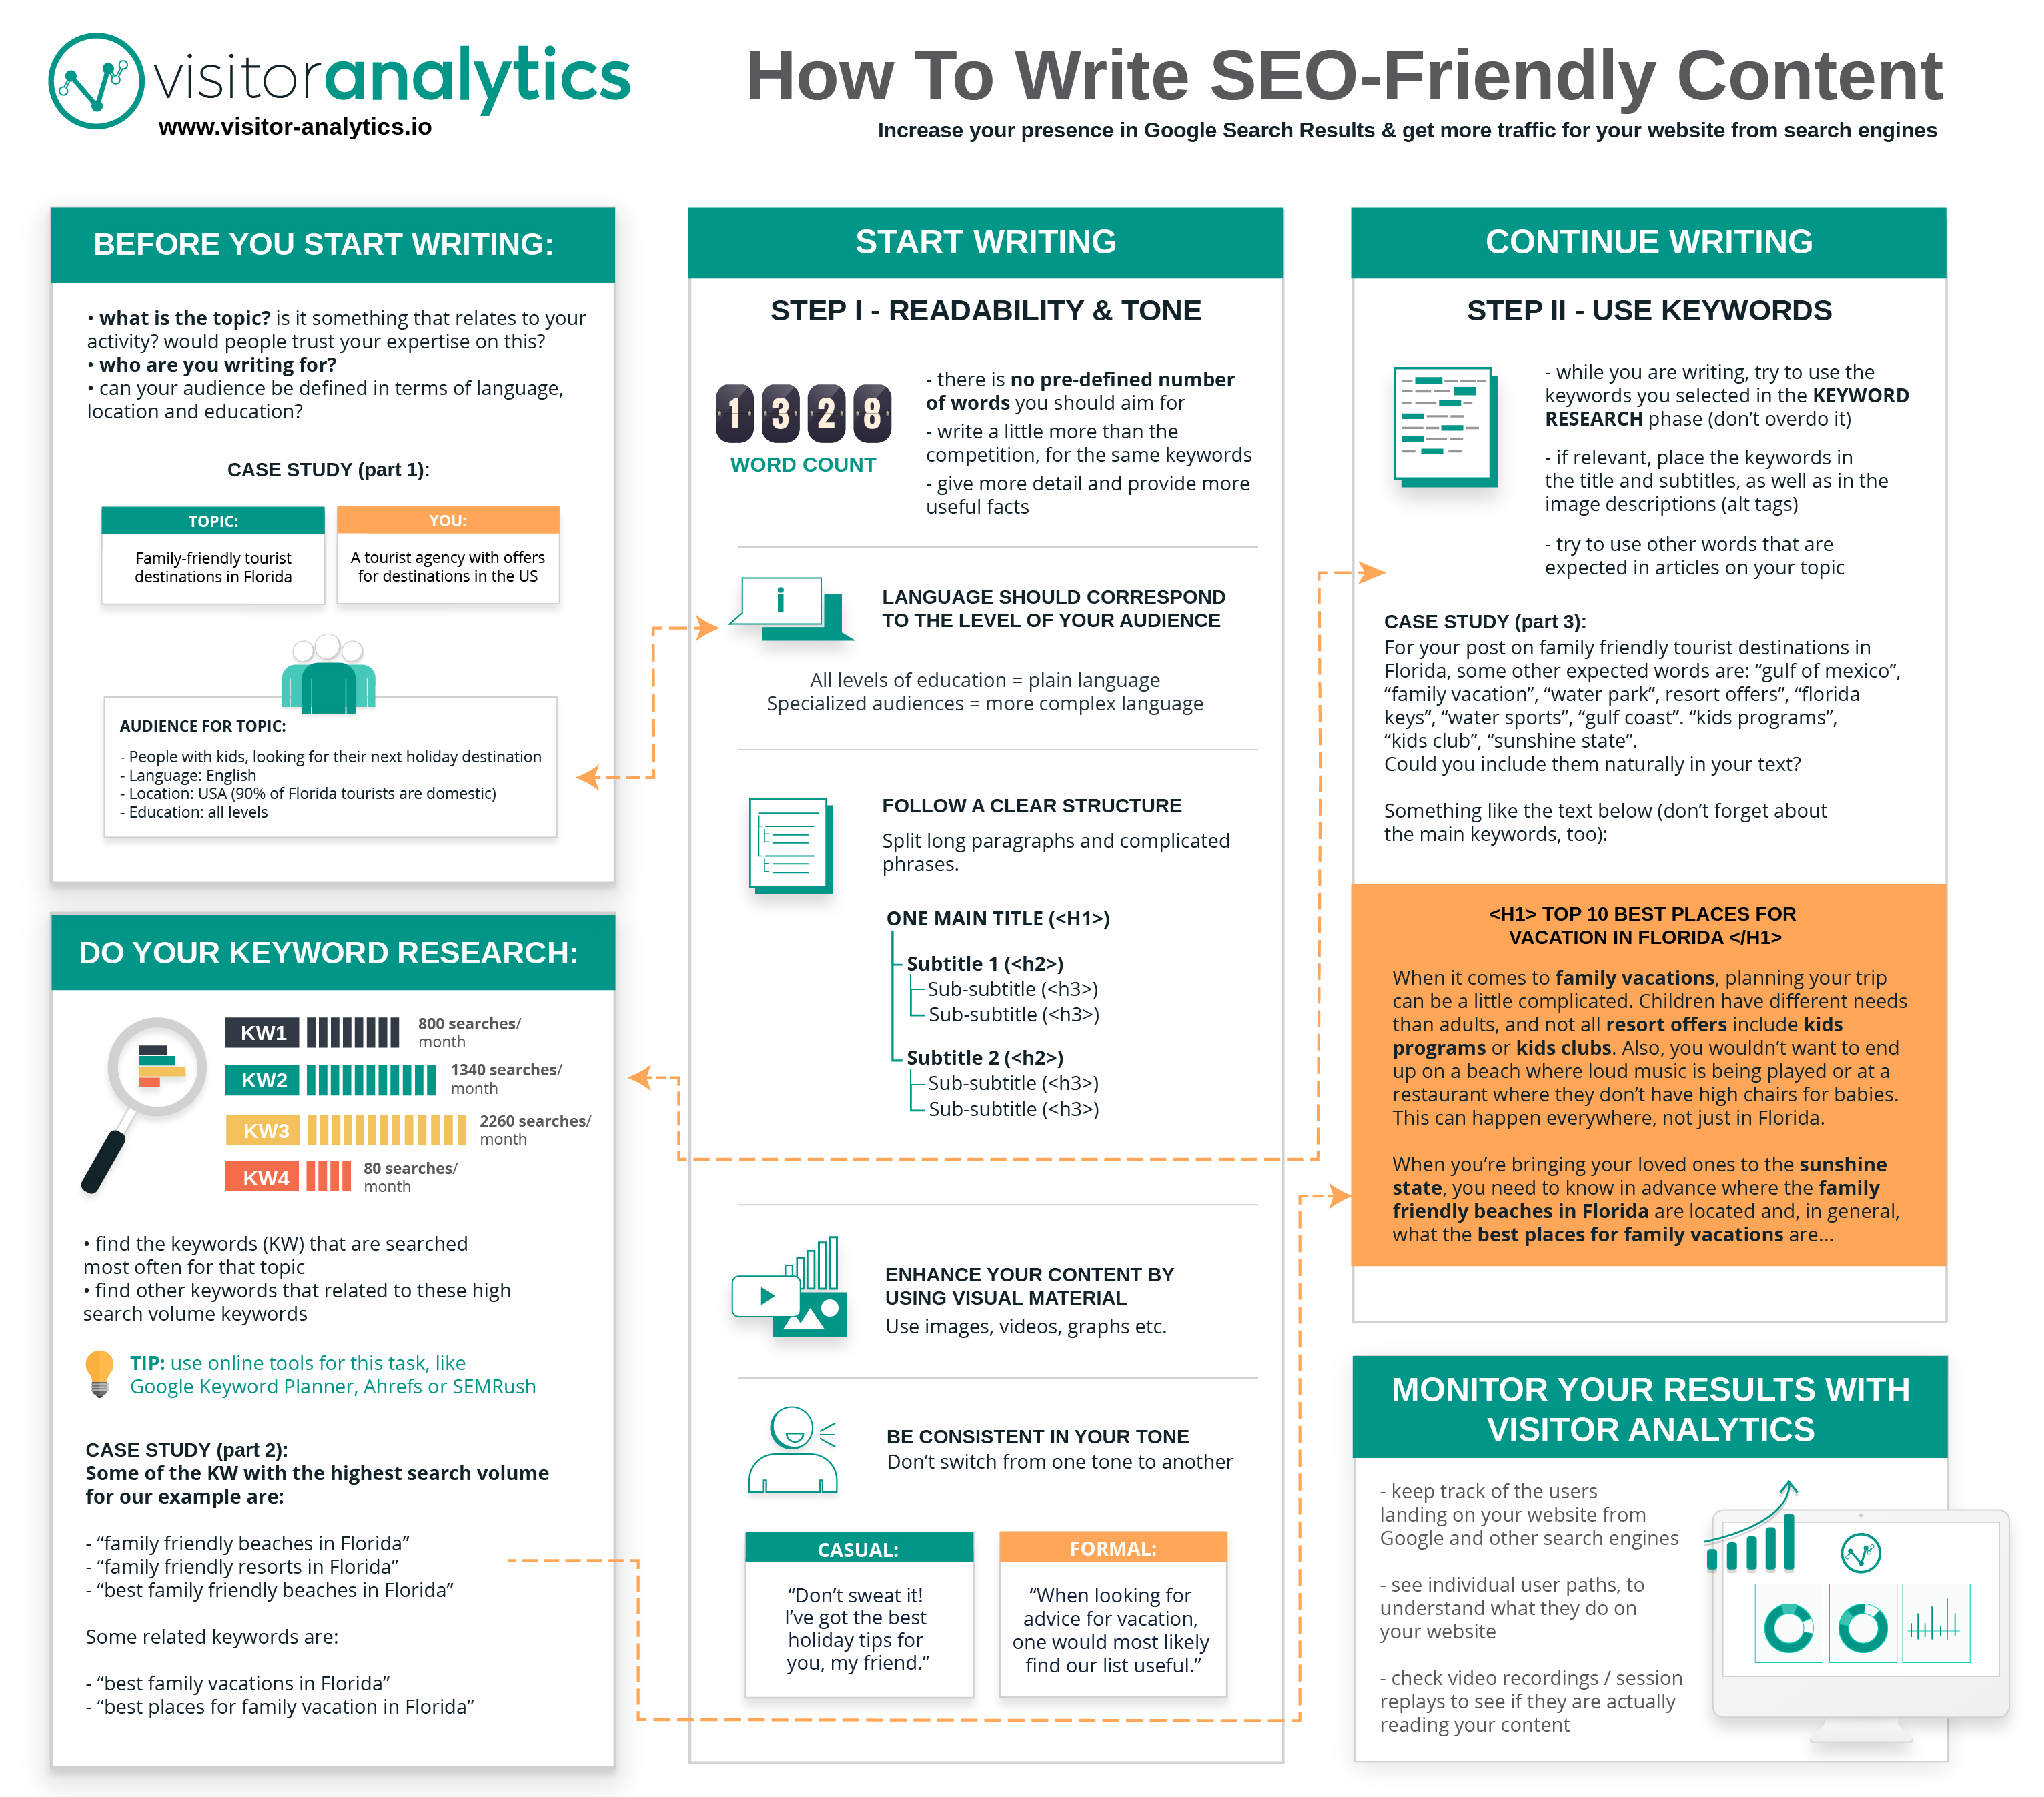 Visitor Analytics Infographic _HOw to write SEO friendly content